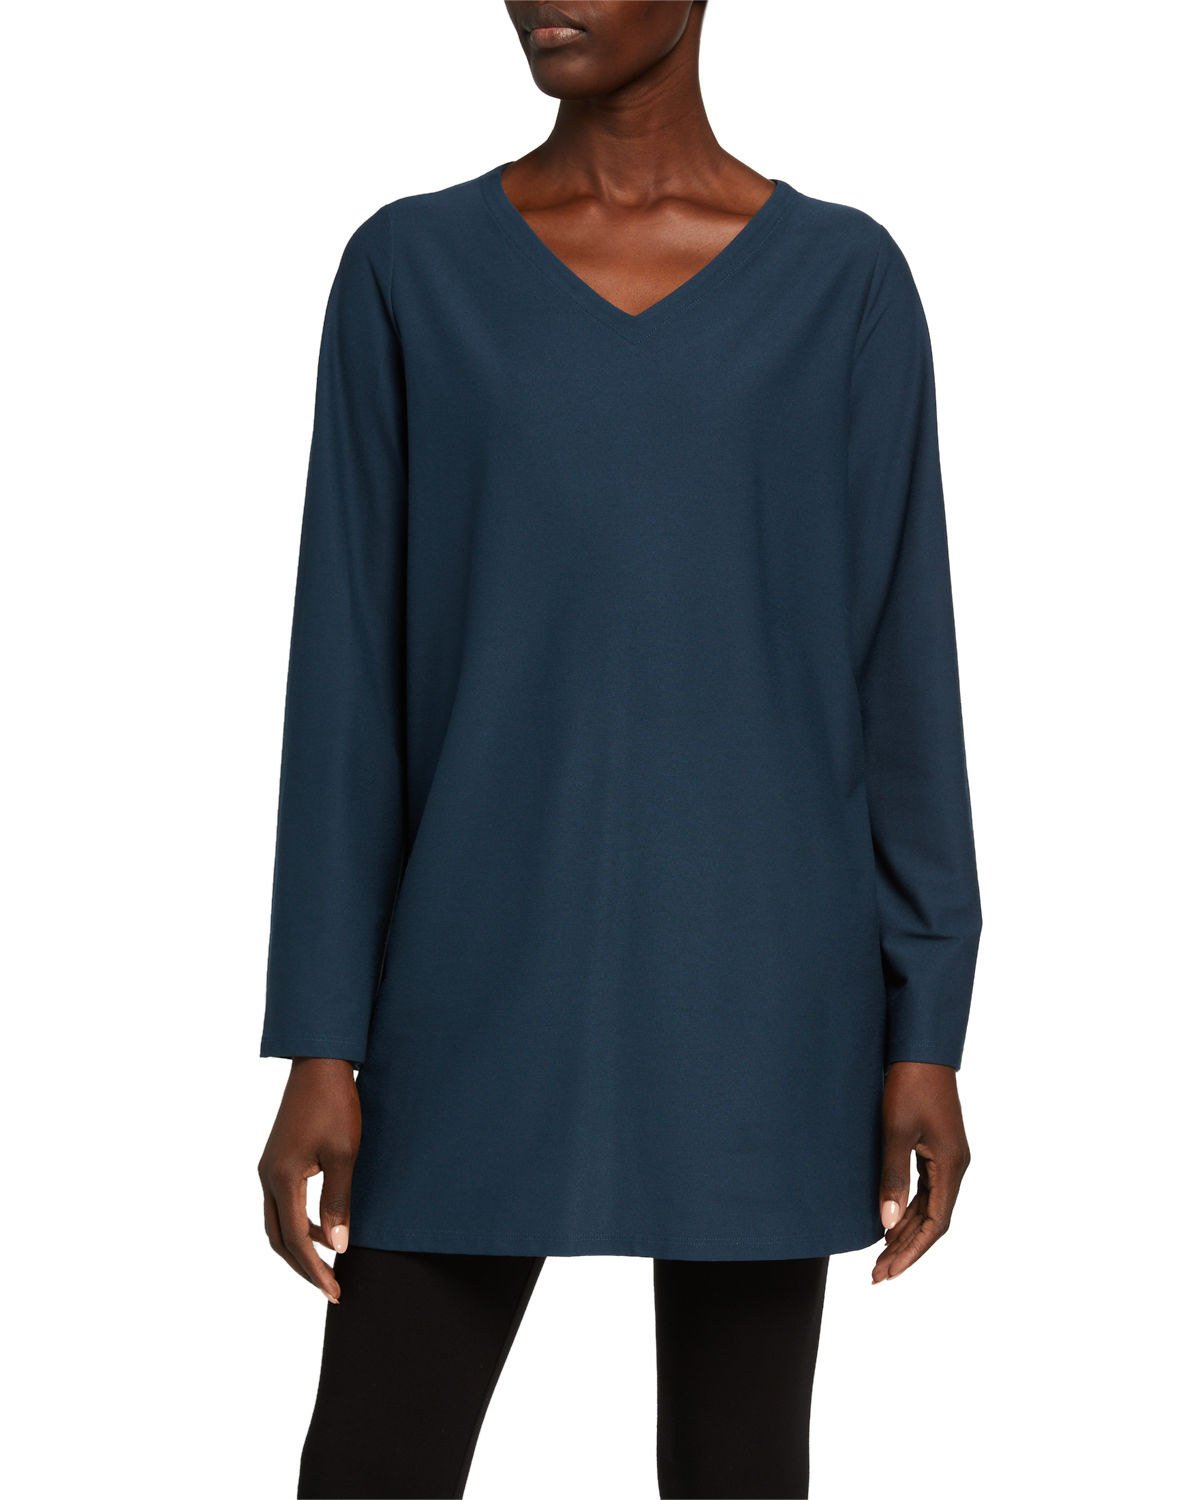 EILEEN FISHER PETITE V-NECK STRETCH CREPE SIDE SLIT TUNIC